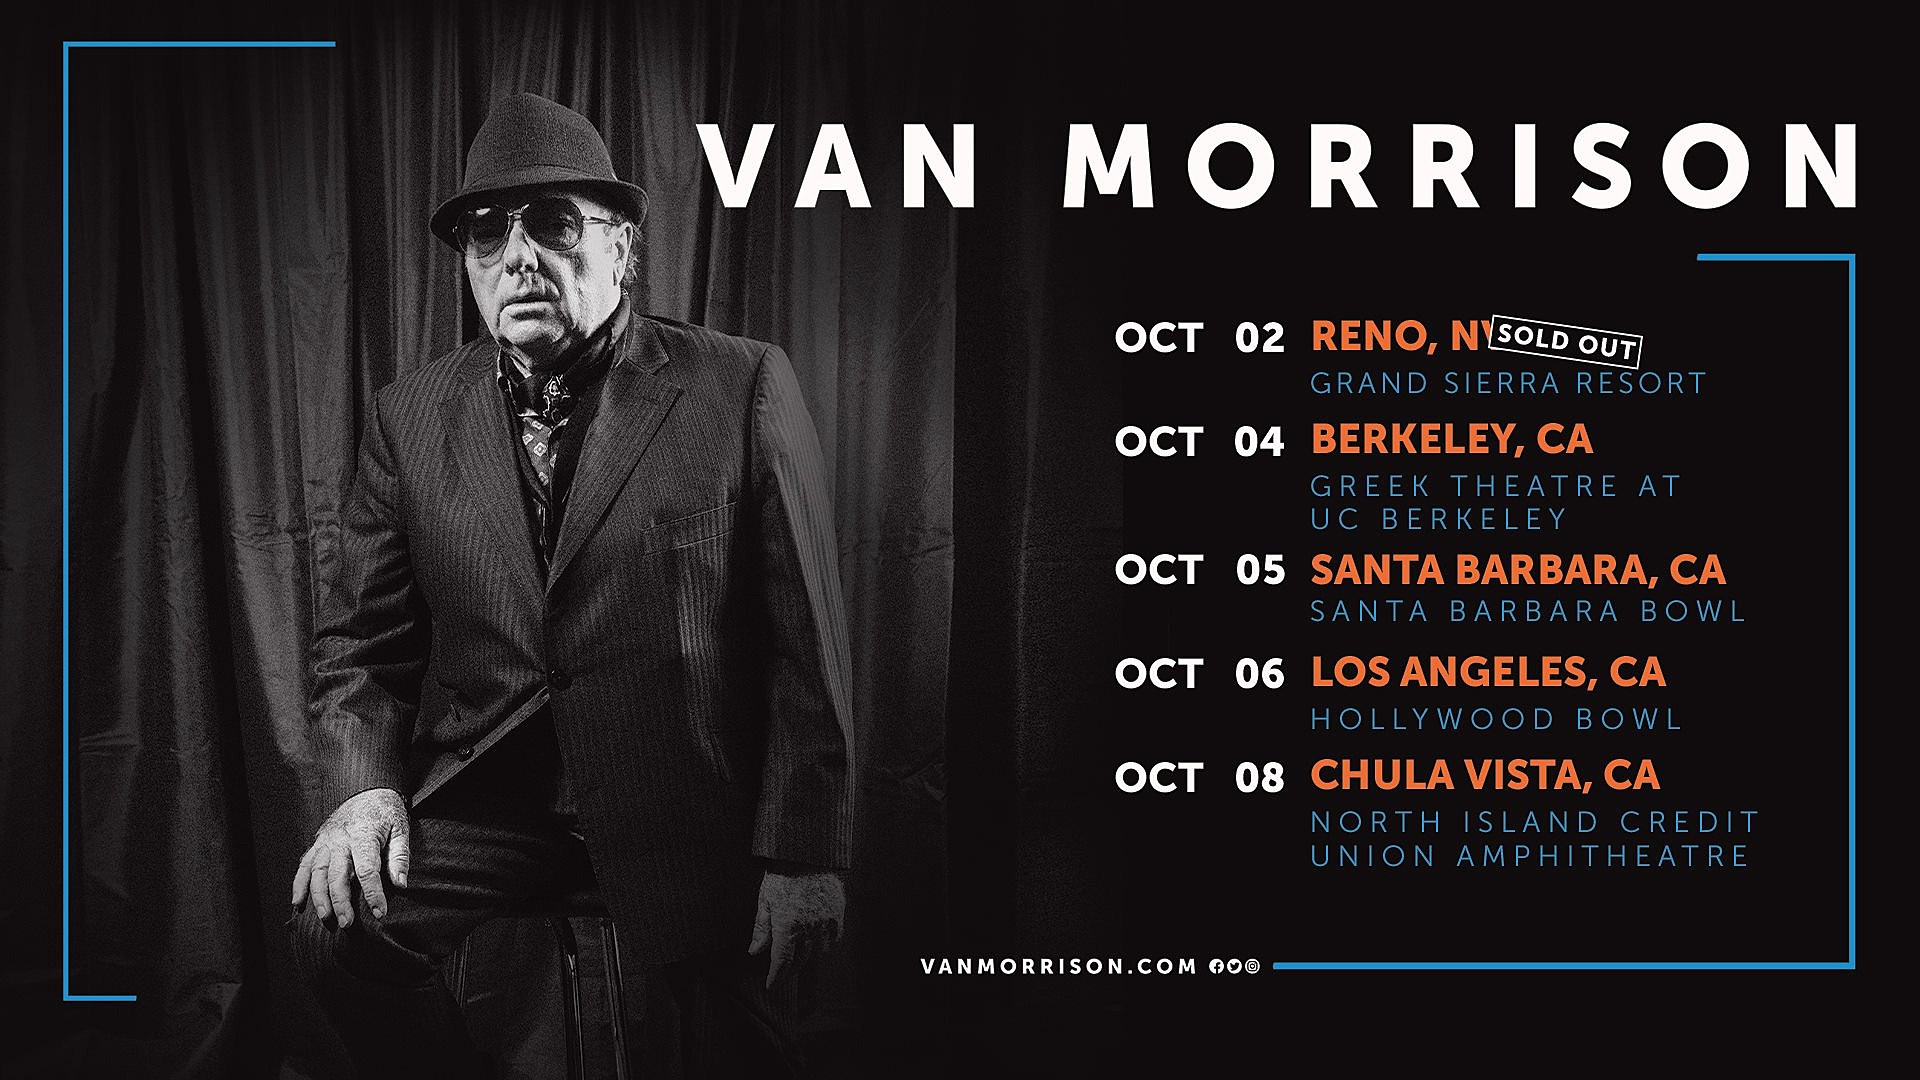 Van Morrison Touring The West Coast This Fall, Playing